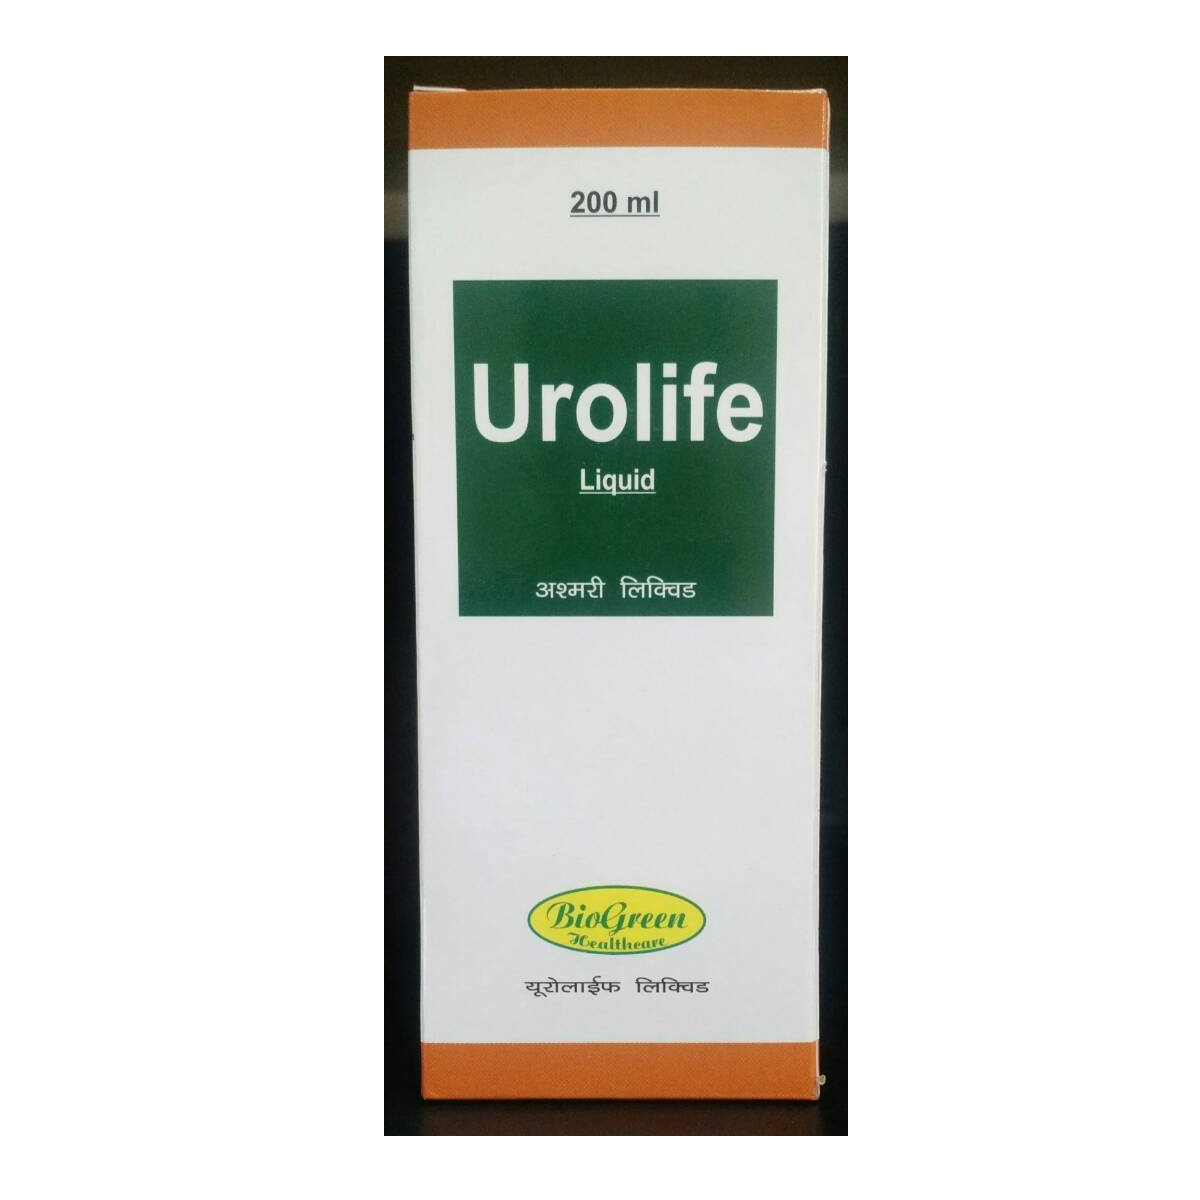 Urolife Liquid In Narsinghpur